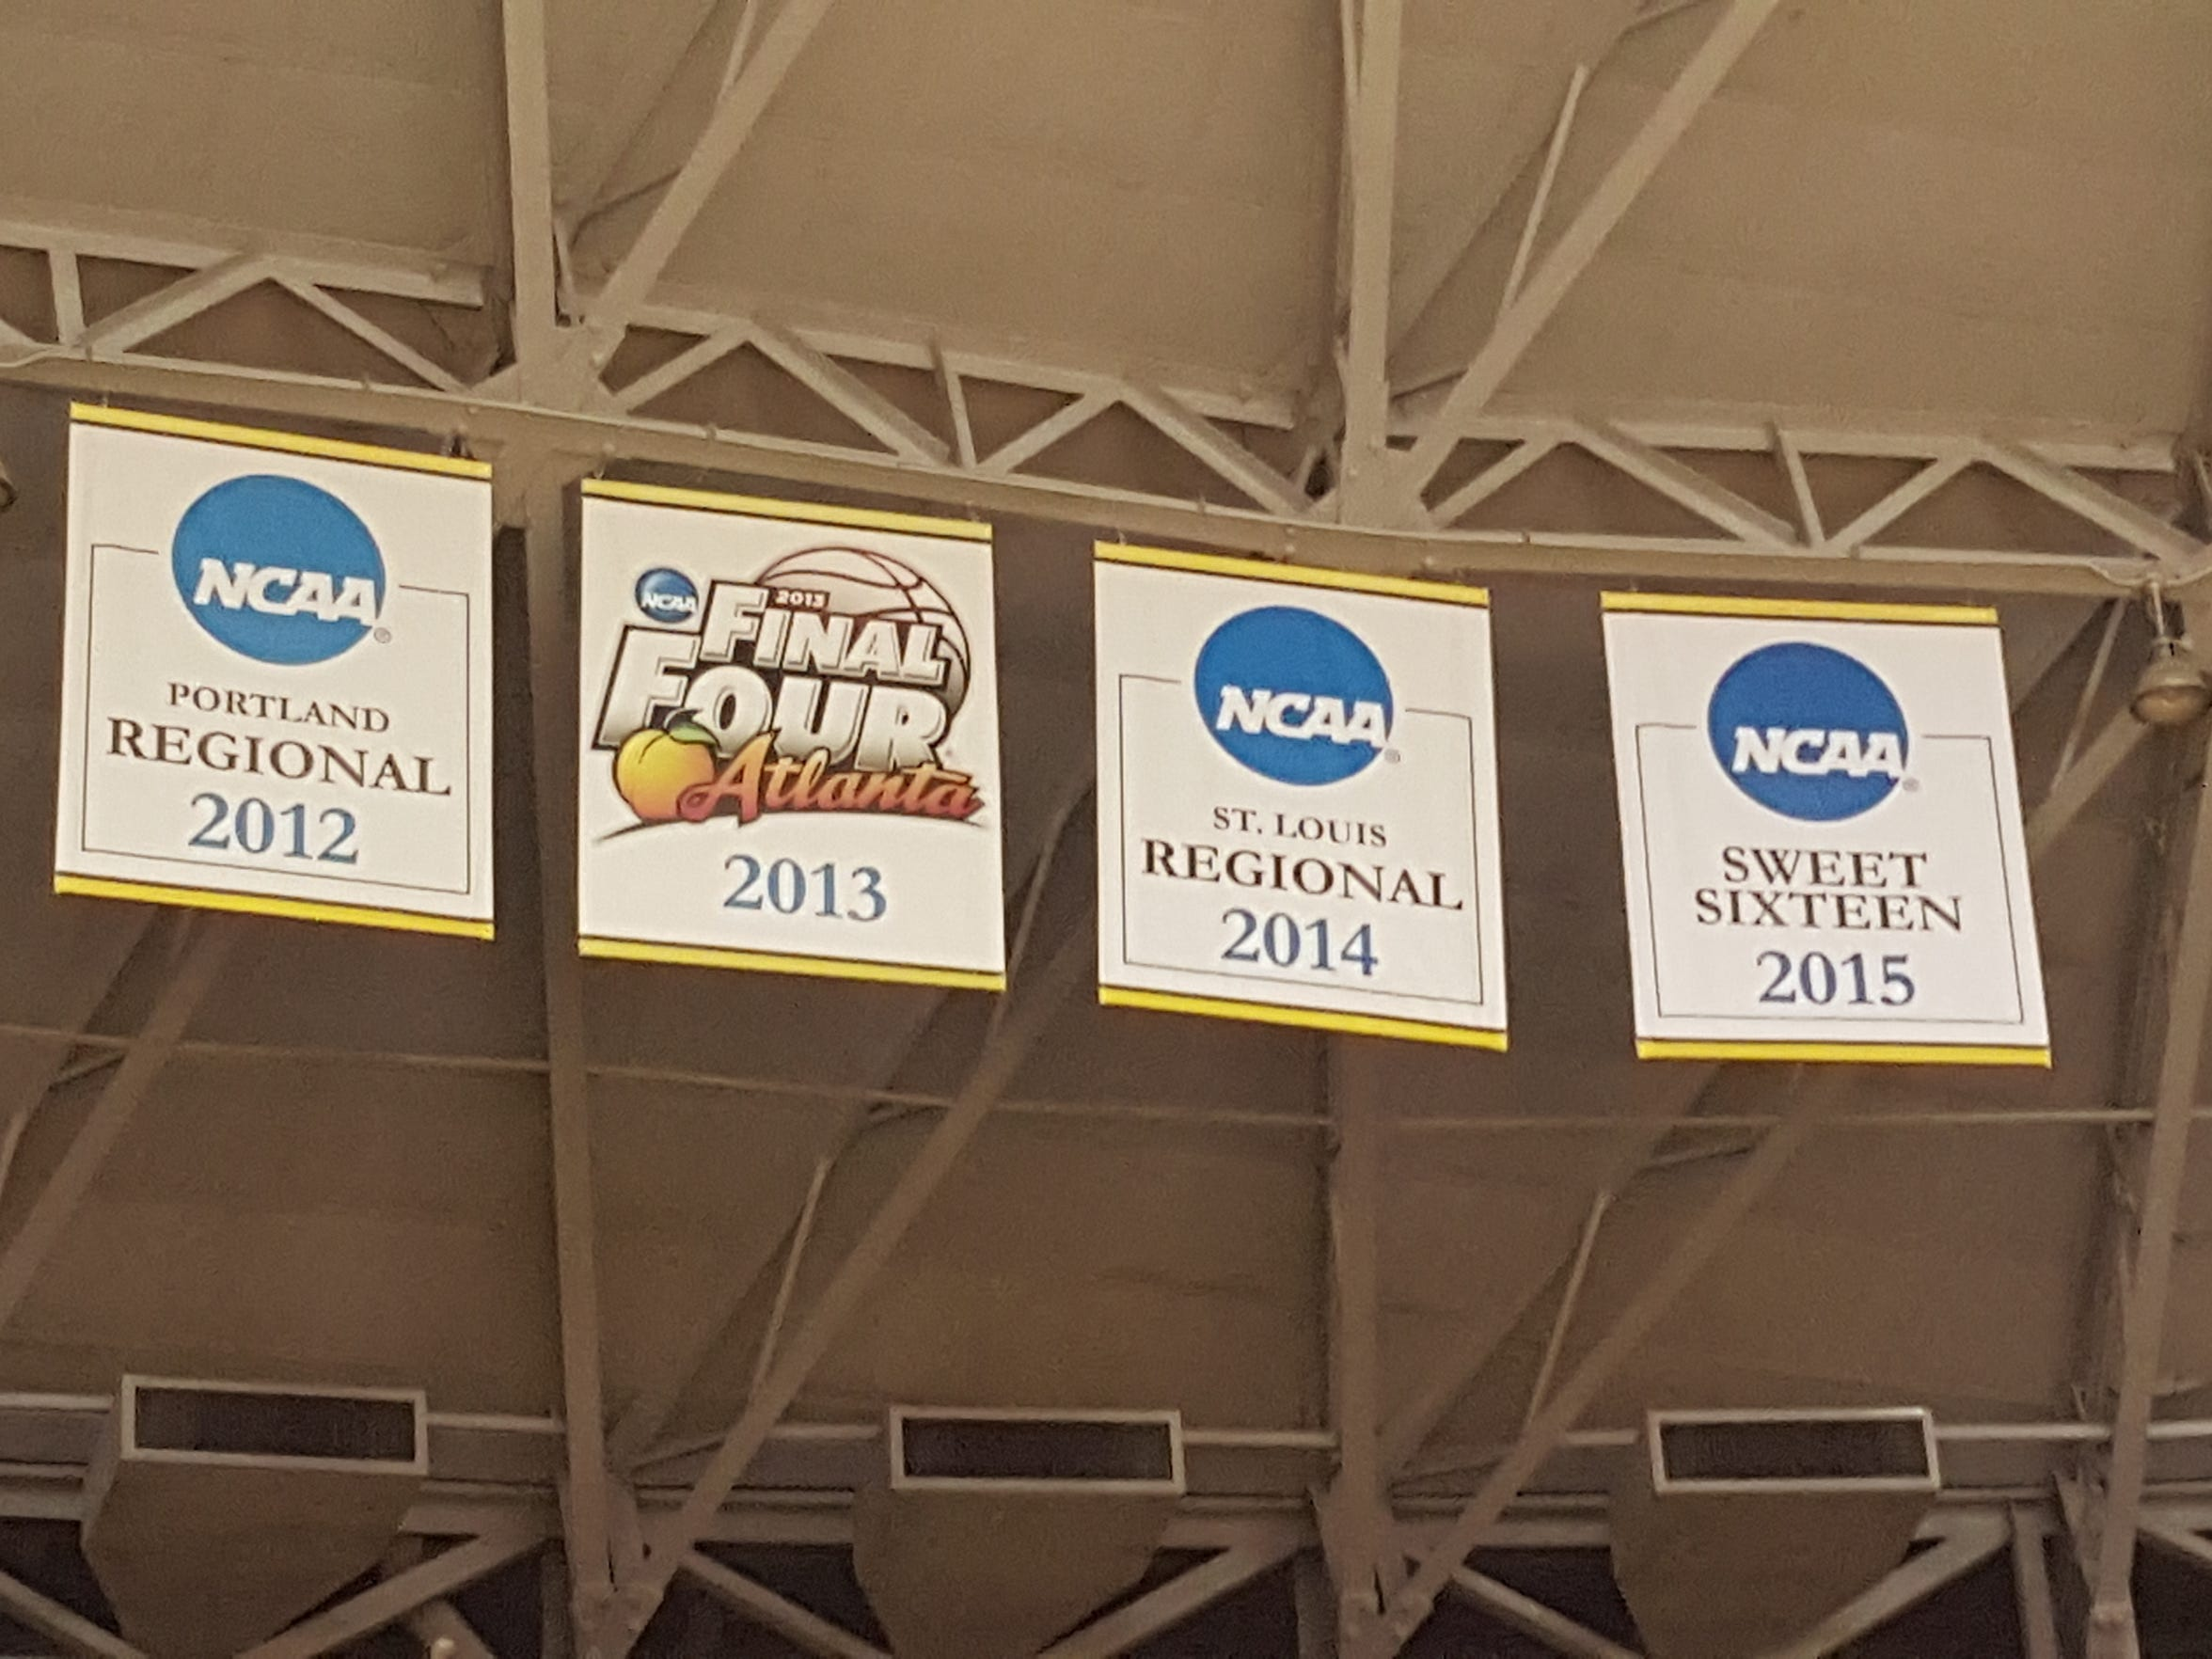 The simple banners hanging from the rafters at Koch Arena help tell Wichita State's story.